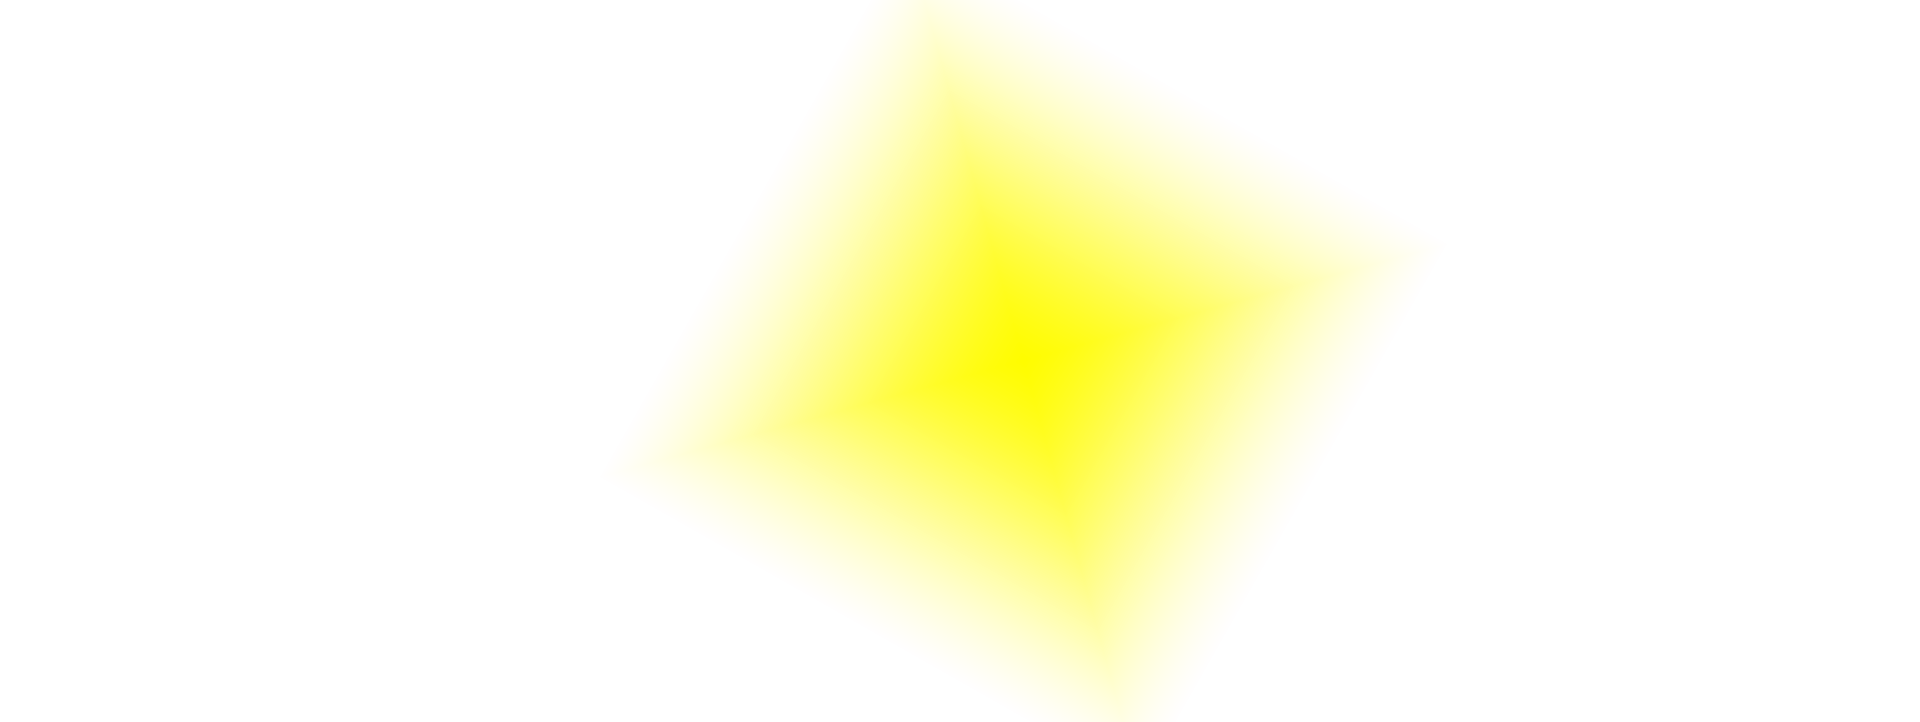 Glowing halo png. Graphic design yellow pattern